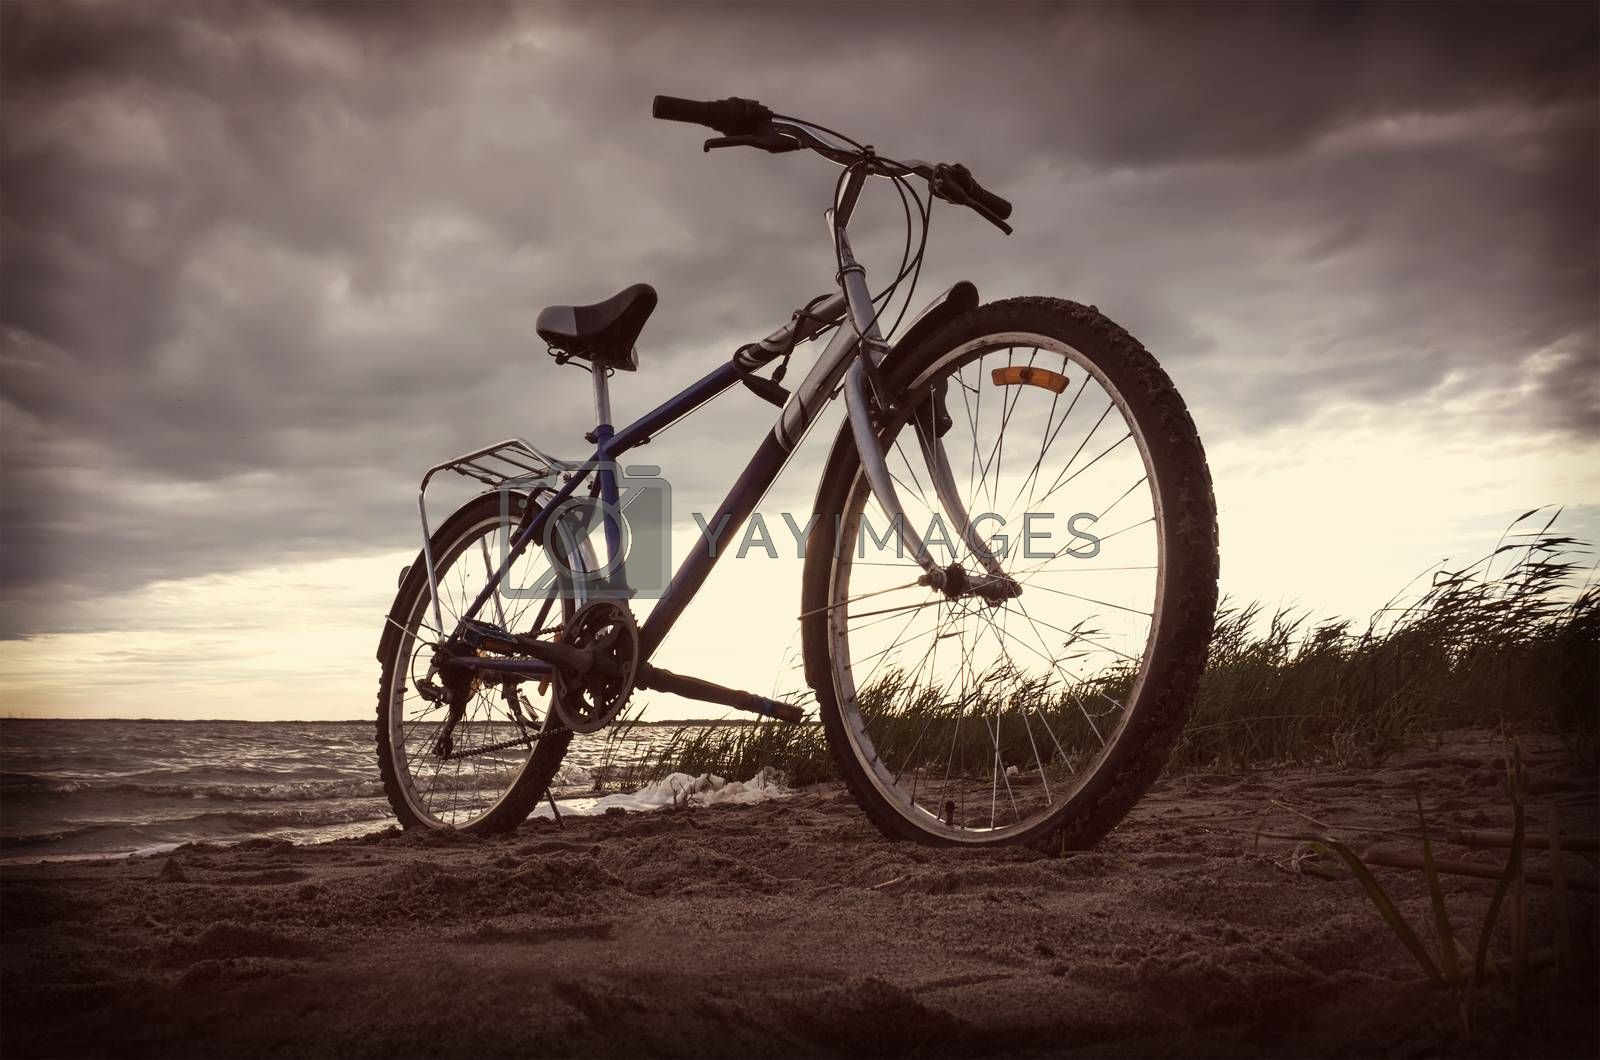 Bicycle near lake during sunset.Vintage bike near the lake in the evening, warm sunset view. Toned retro photo.